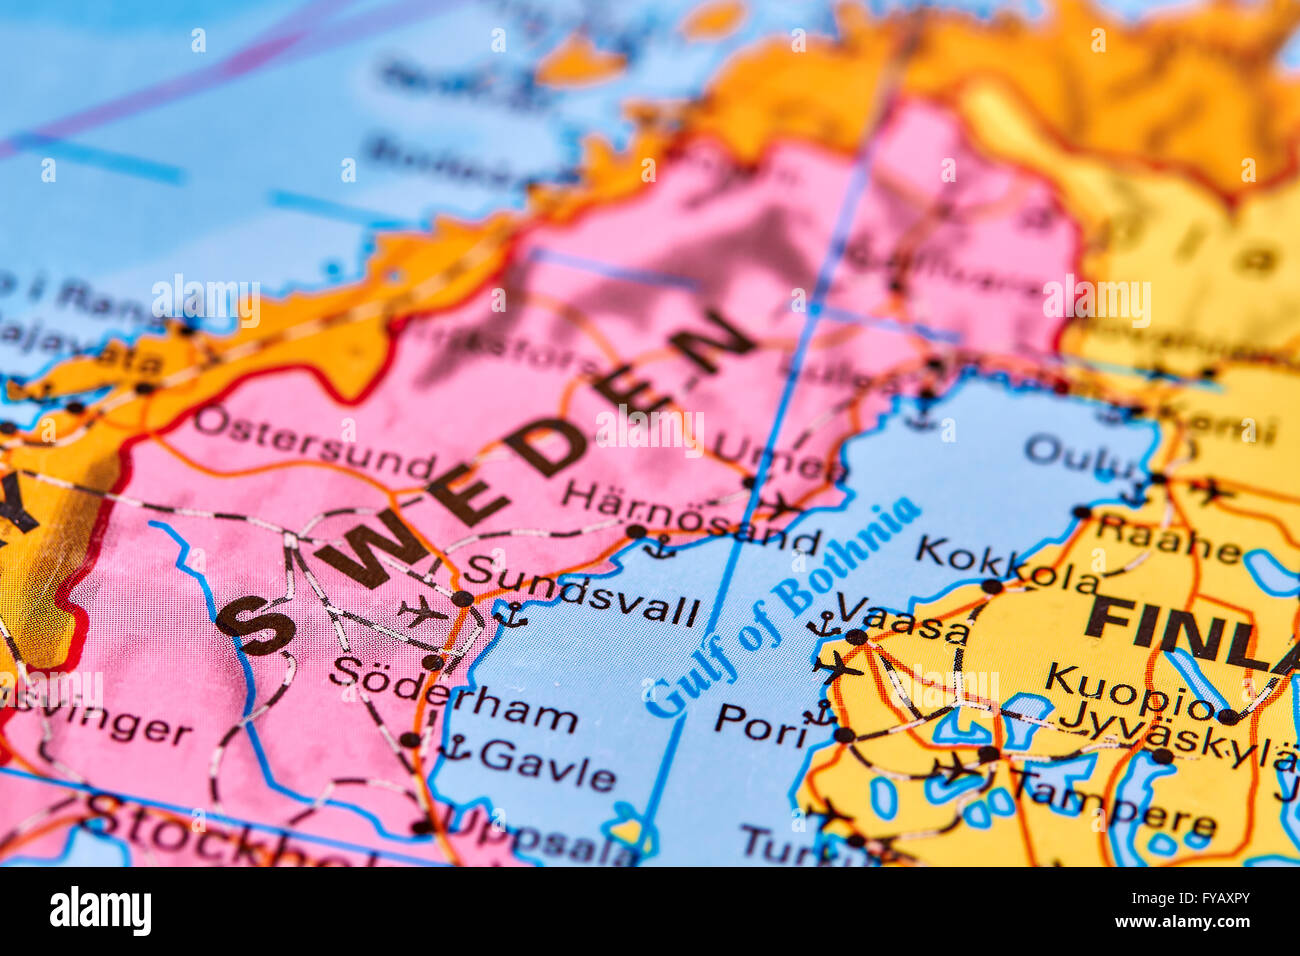 Sweden, Country in Europe on the World Map Stock Photo: 102888099 ...